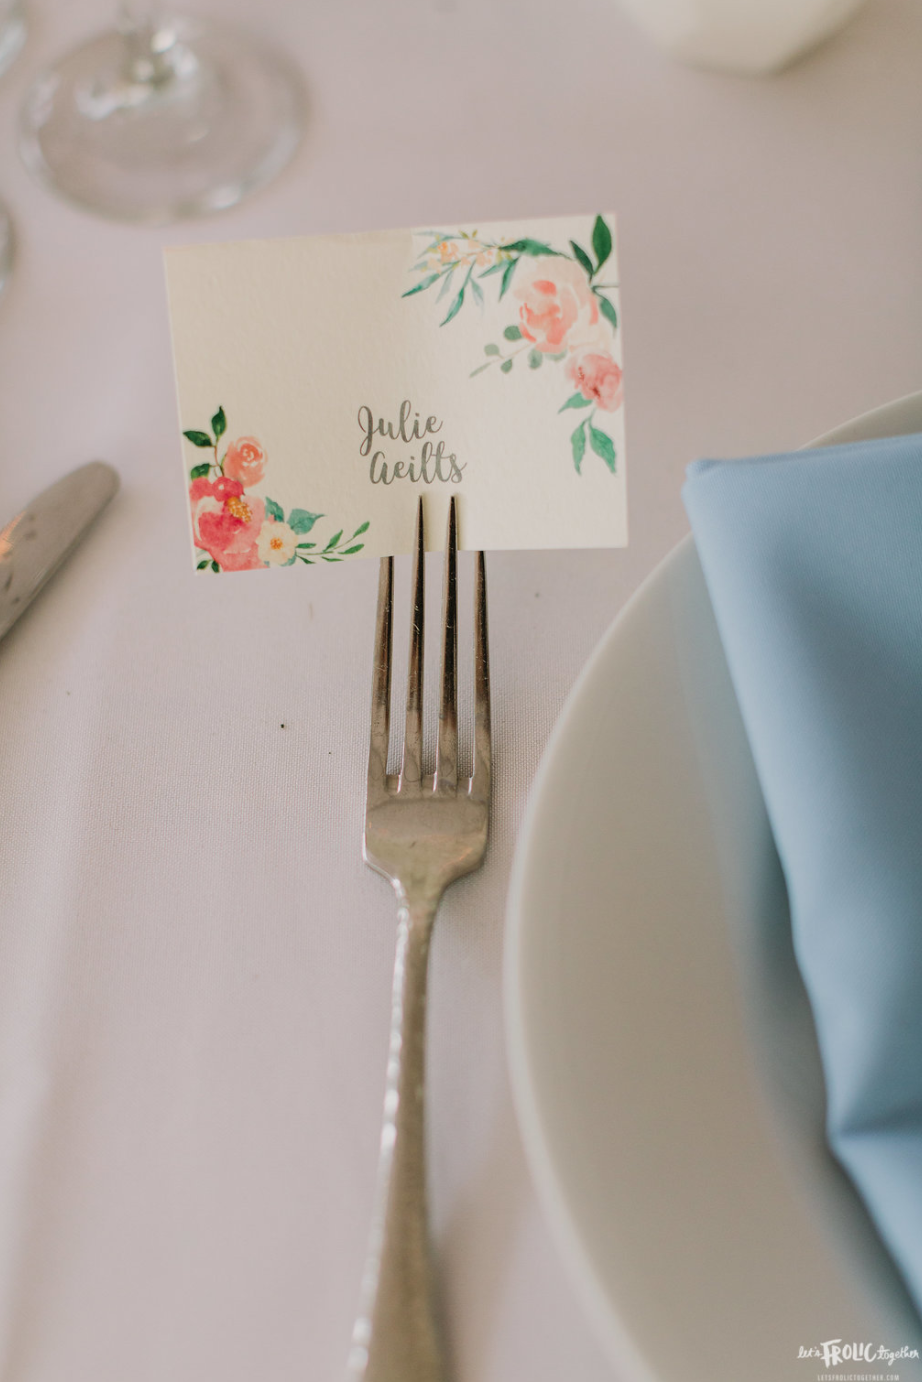 Custom May Flowers Place Card Design  Photography:  Let's Frolic Together  Wedding Planning & Design:  Love Marks the Spot  Venue:  The Darlington House